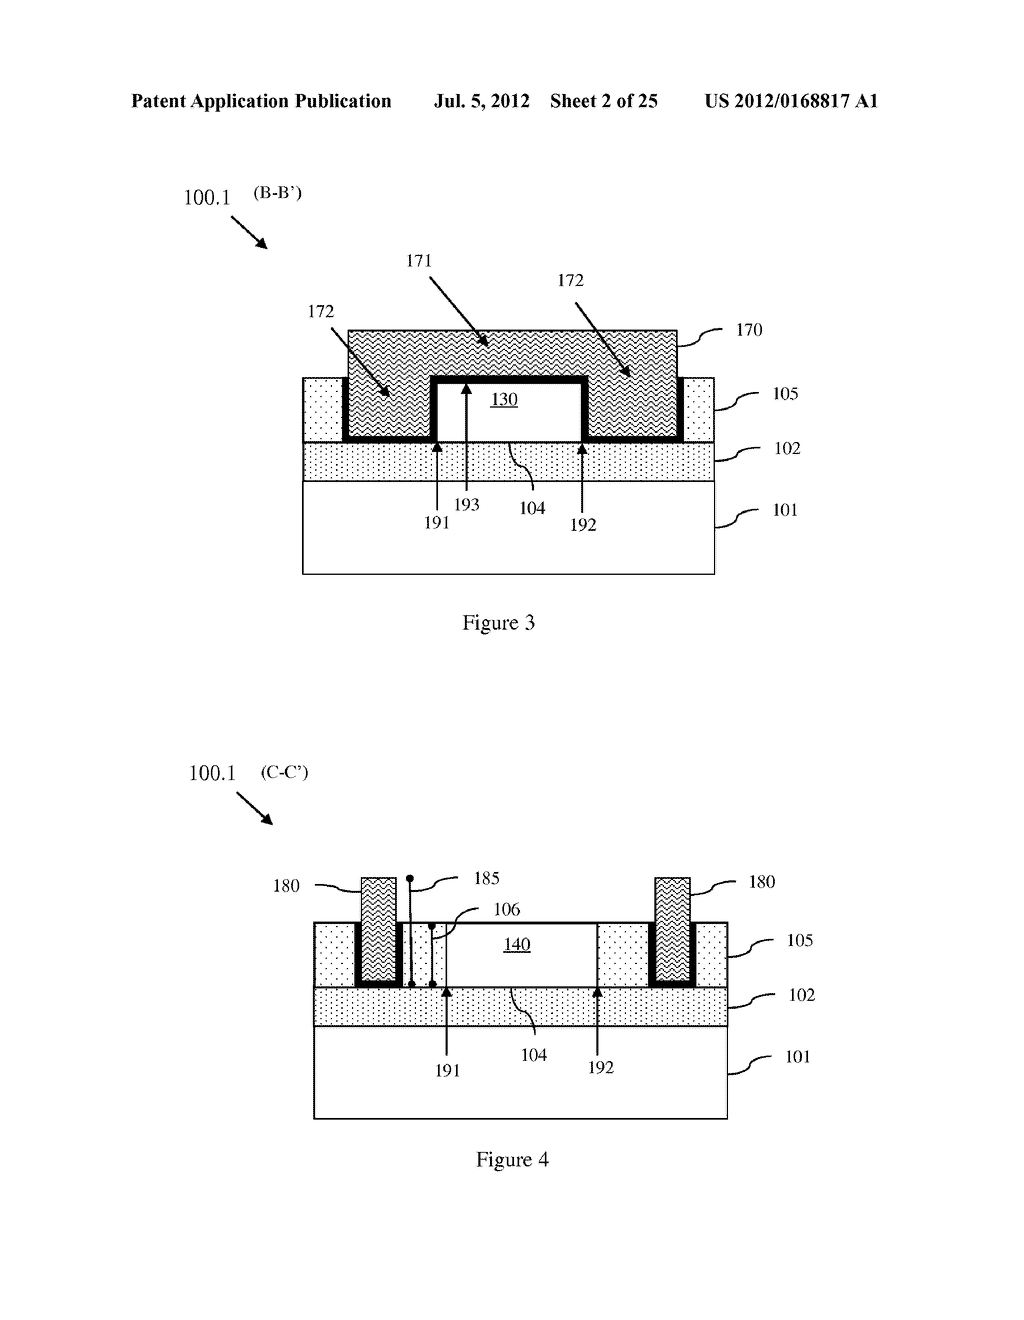 Lateral Extended Drain Metal Oxide Semiconductor Field Effect Scr Silicon Controlled Rectifier High To Body Breakdown Voltage Vb A Method Of Forming An Ledmosfet And Incorporating Complementary Pair